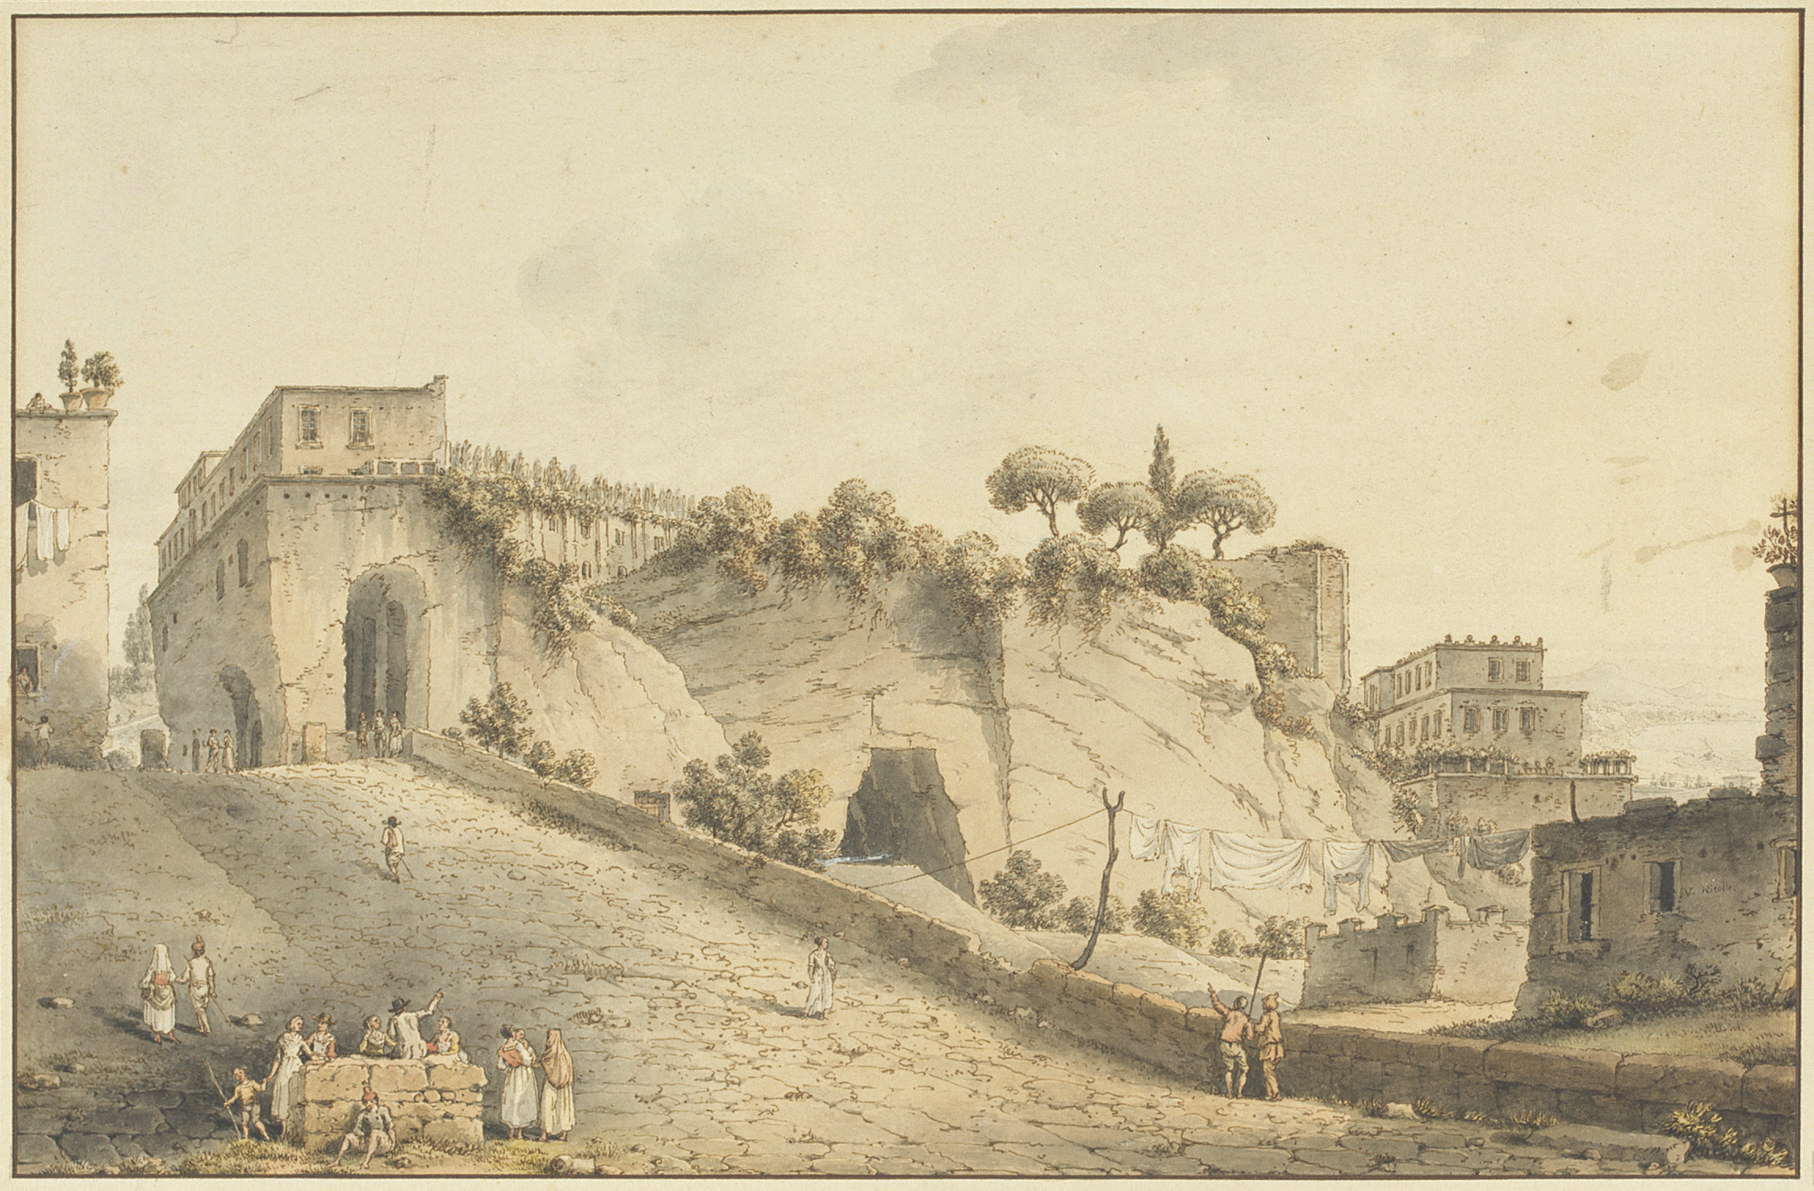 The castle of Capodimonte, Naples, with Vesuvius in the distance